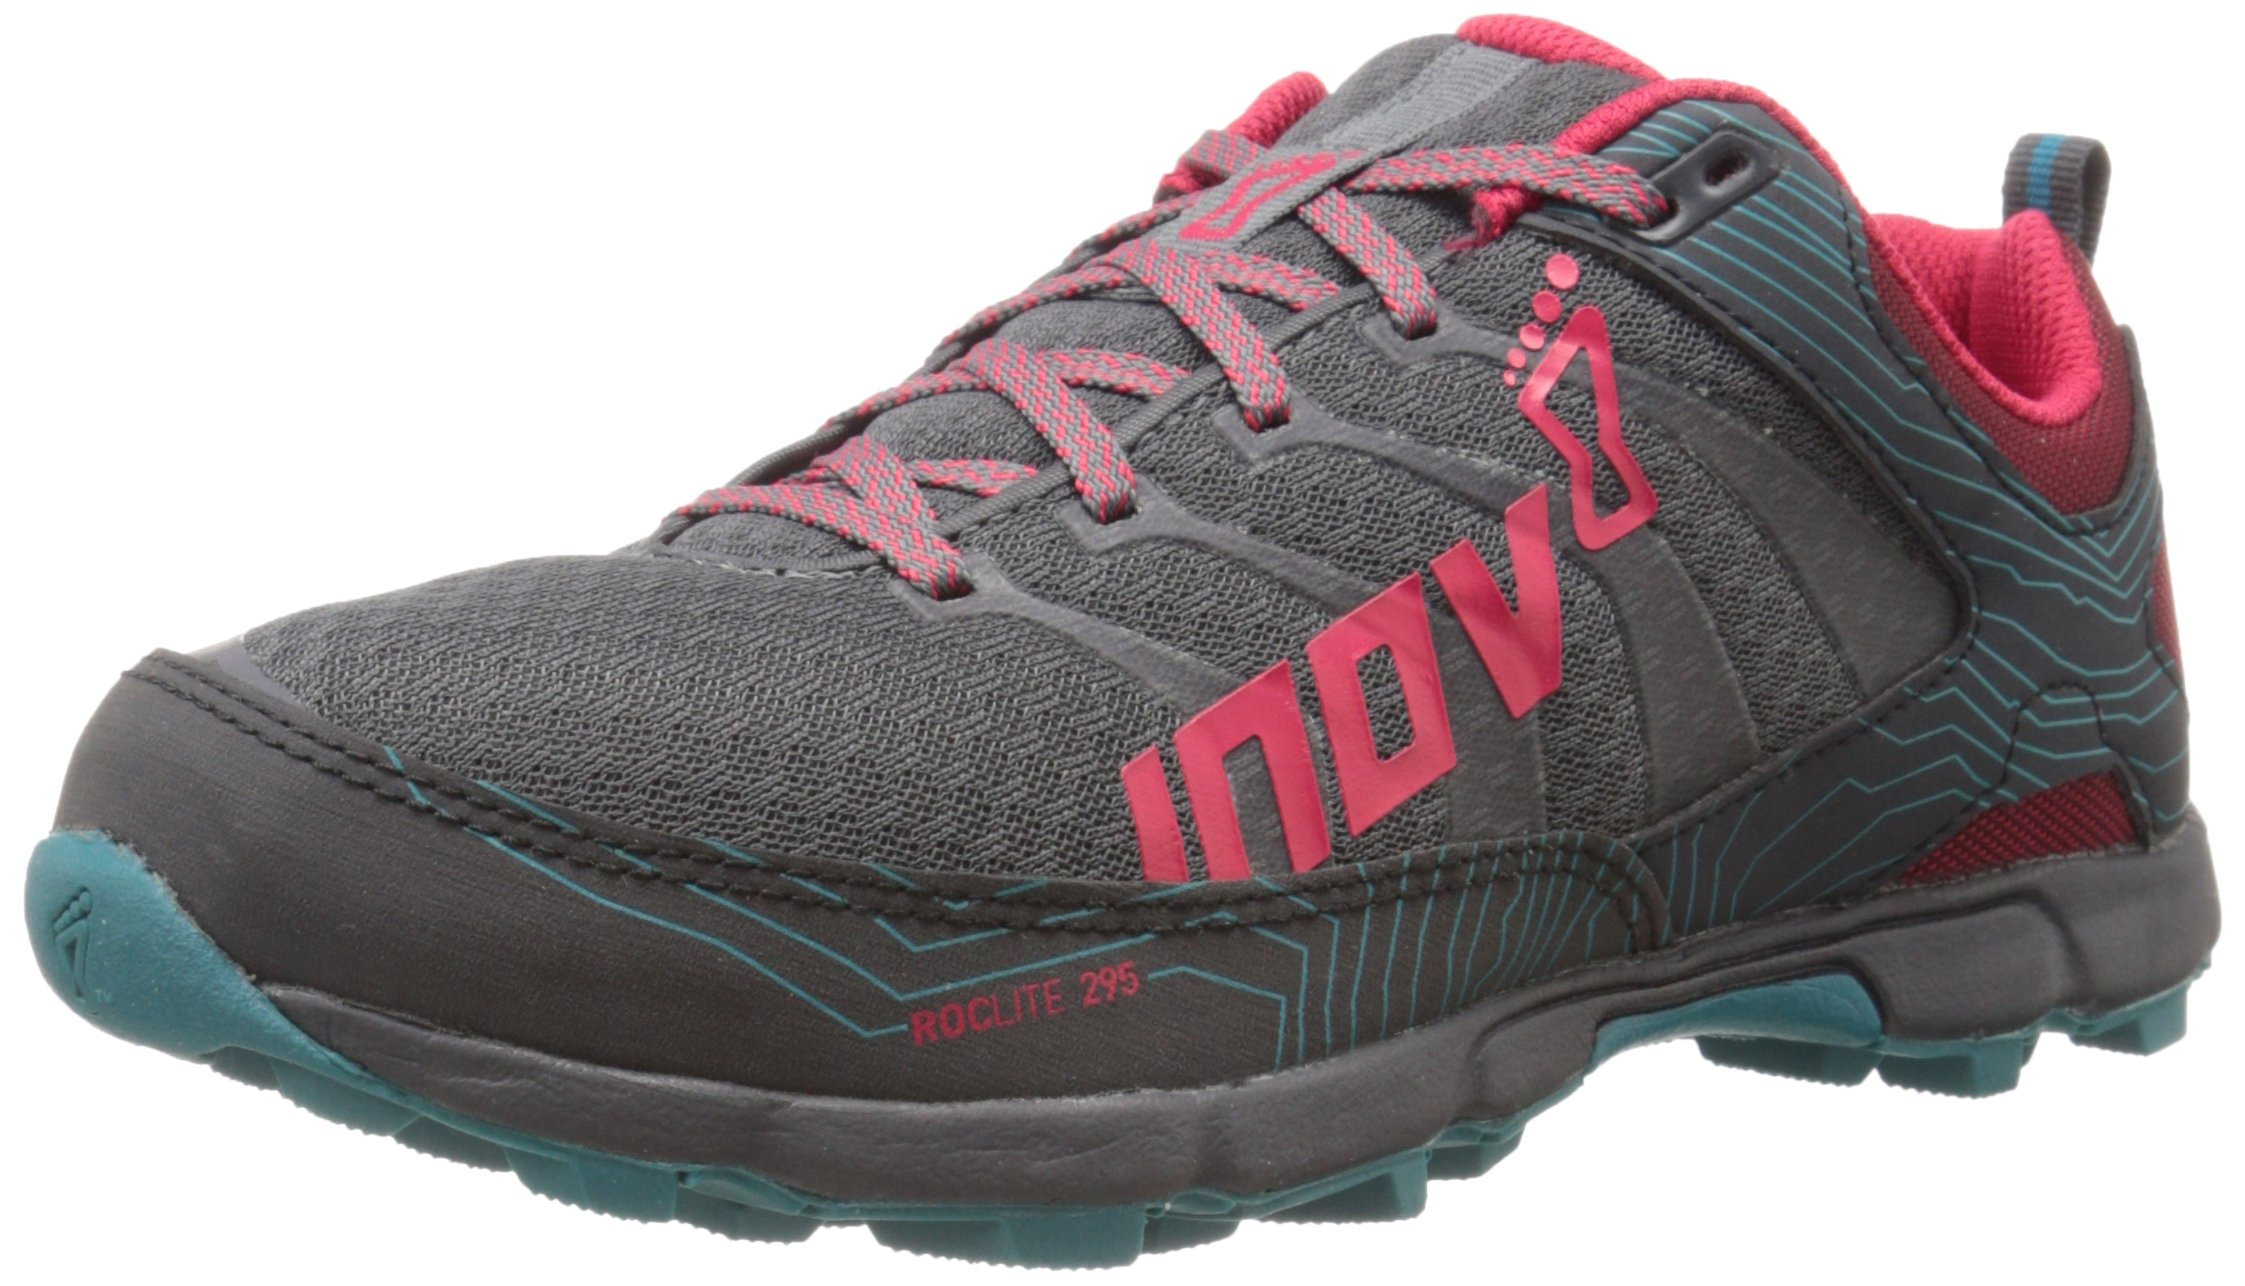 Inov-8 Women's Roclite 295 Trail Running Shoe, Grey/Berry/Teal, 10.5 B US